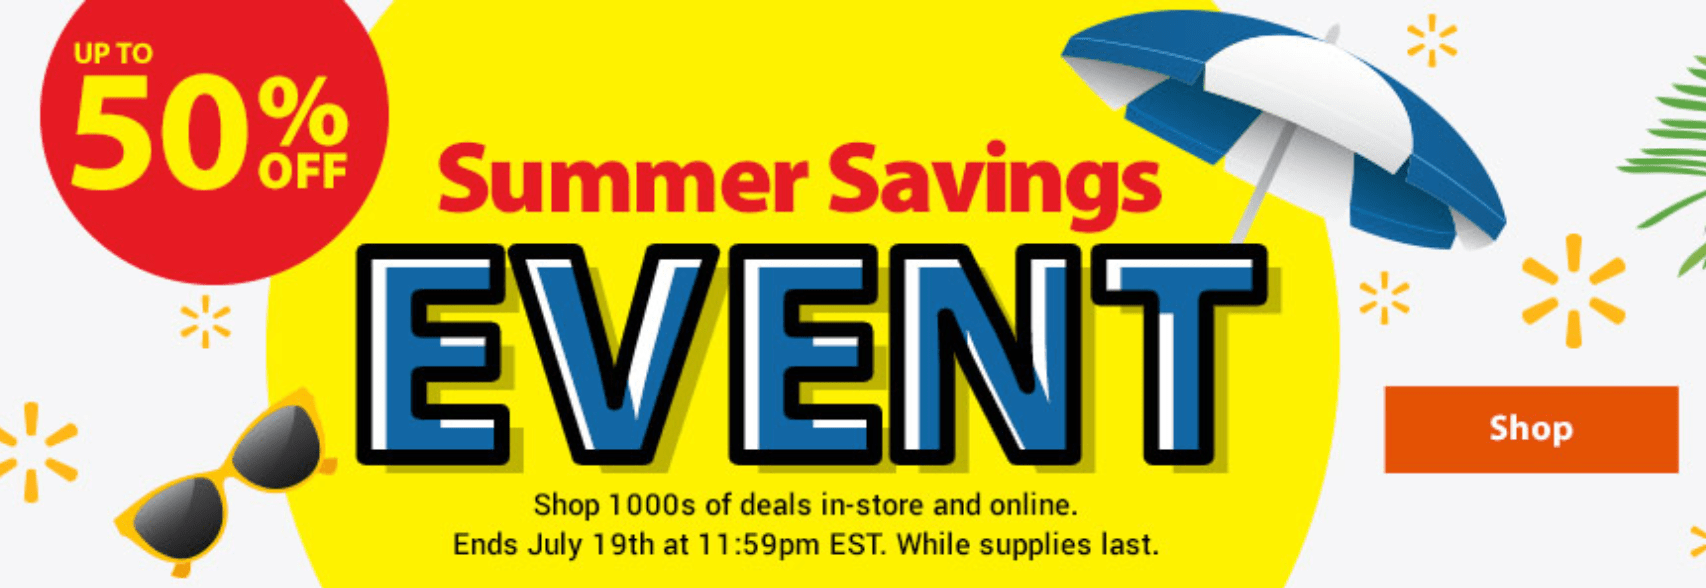 Walmart Canada 2018 Summer Savings Event Save 50 Off Paw Patrol Beats By Dr Dre Urbeats3 Headphones Much More Canadian Freebies Coupons Deals Bargains Flyers Contests Canada